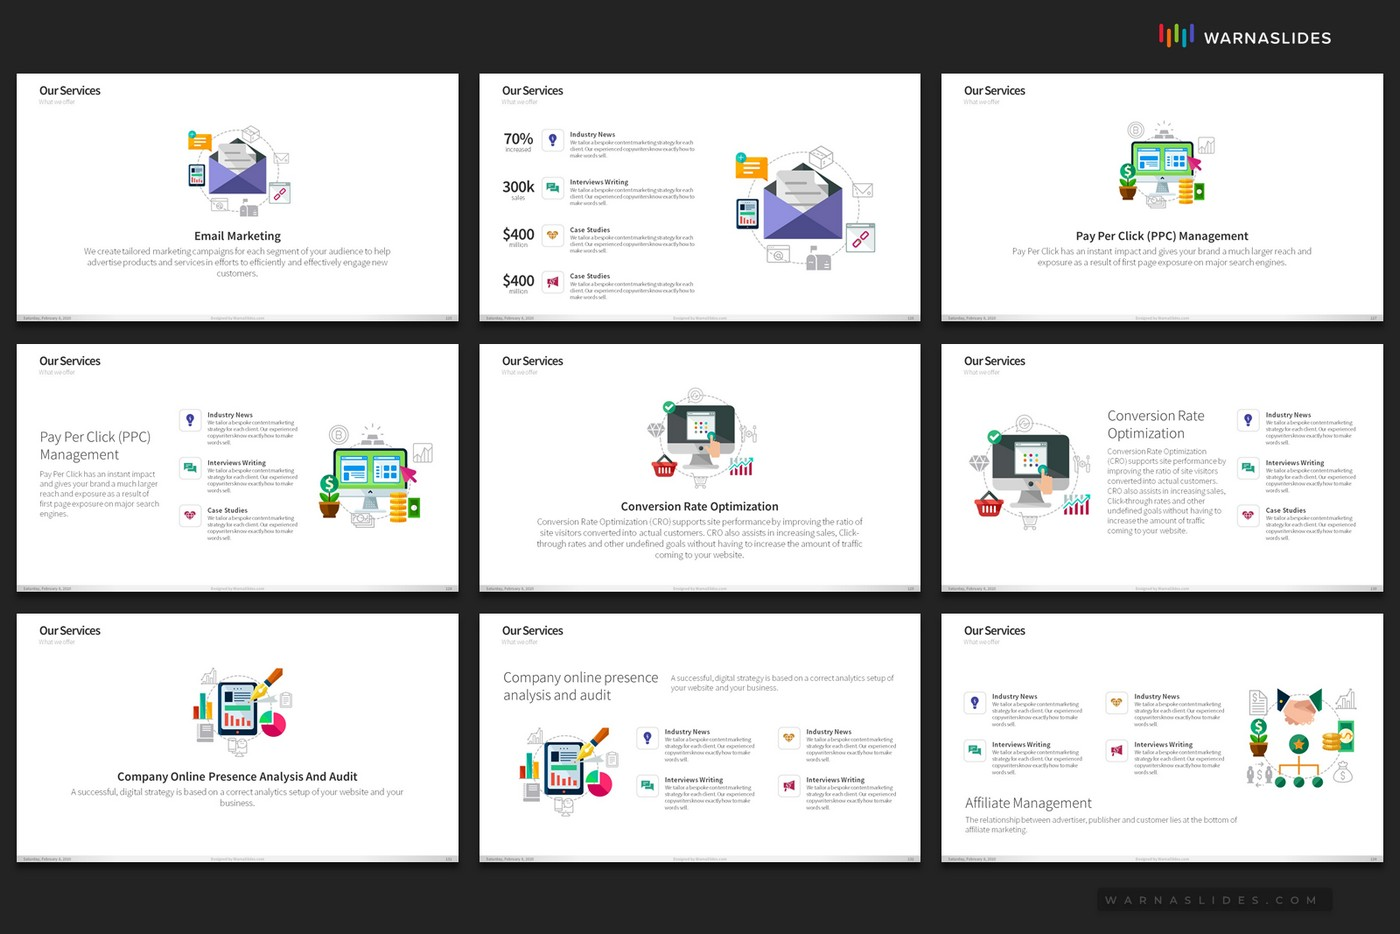 Services-SEO-Management-Bullet-Points-PowerPoint-Template-for-Business-Pitch-Deck-Professional-Creative-PowerPoint-Icons-020